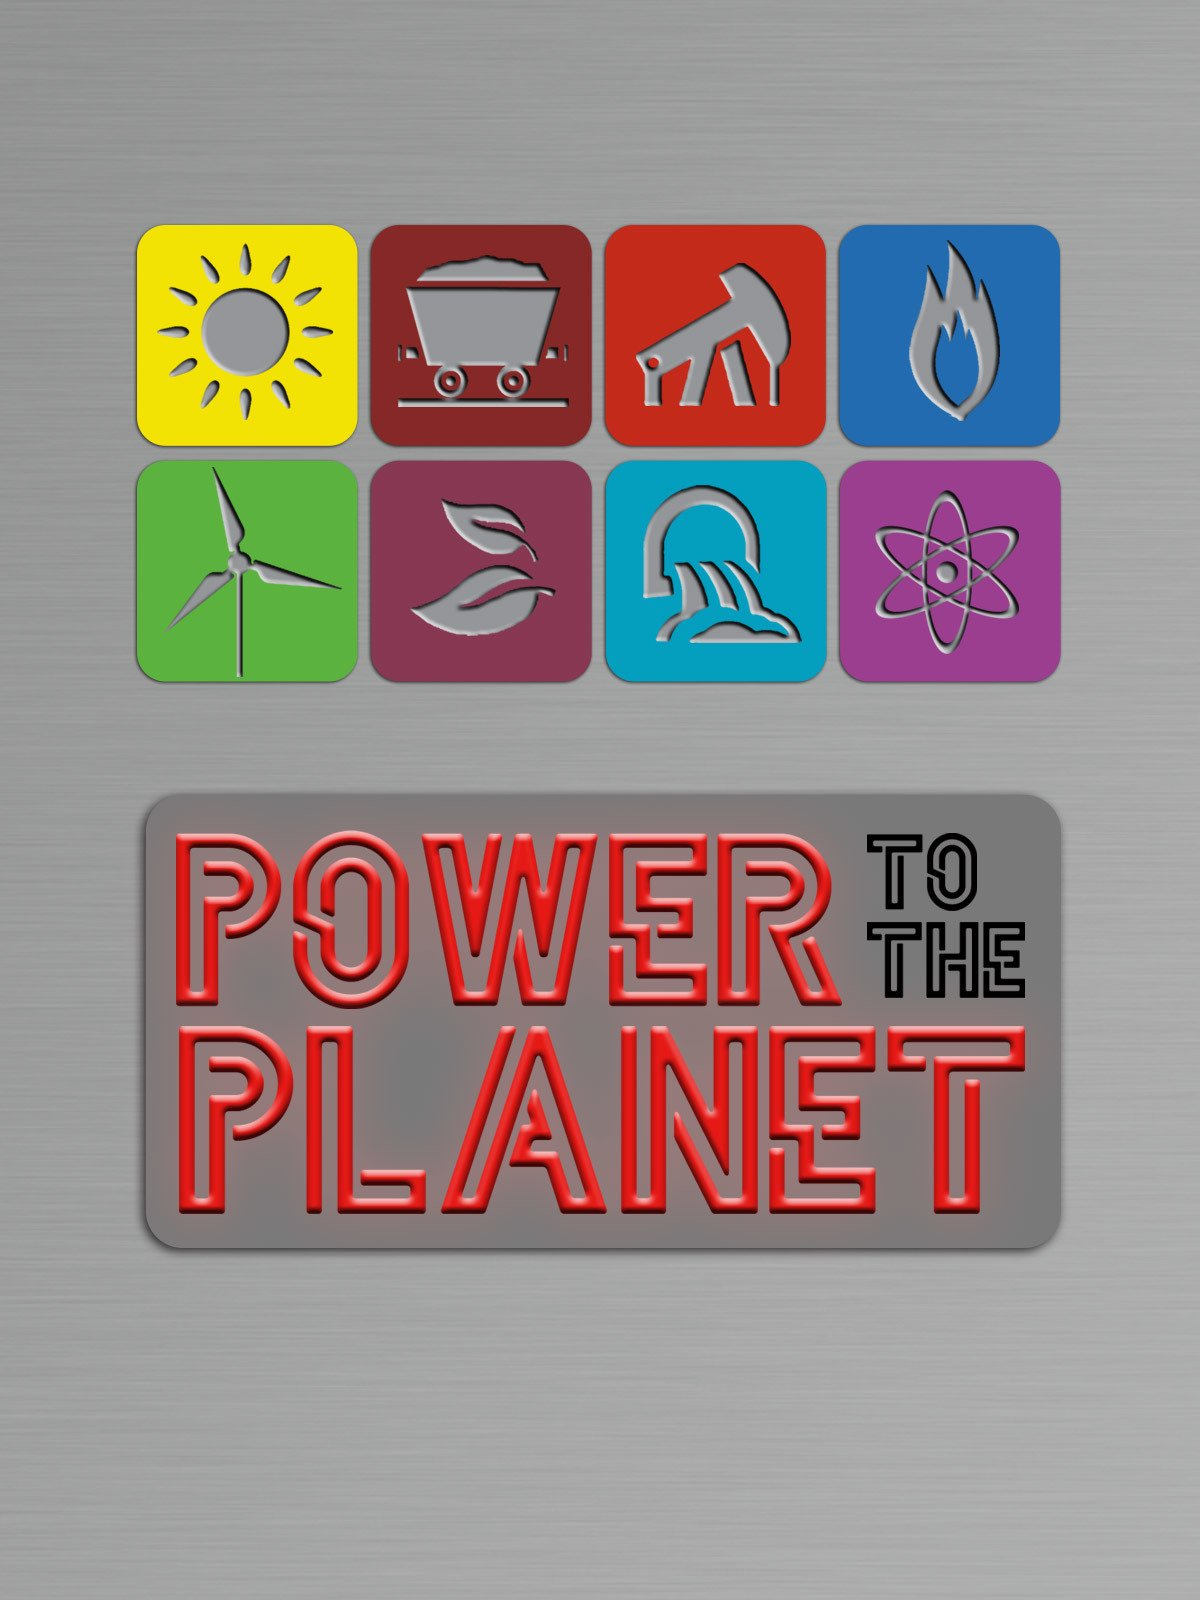 Power to the Planet